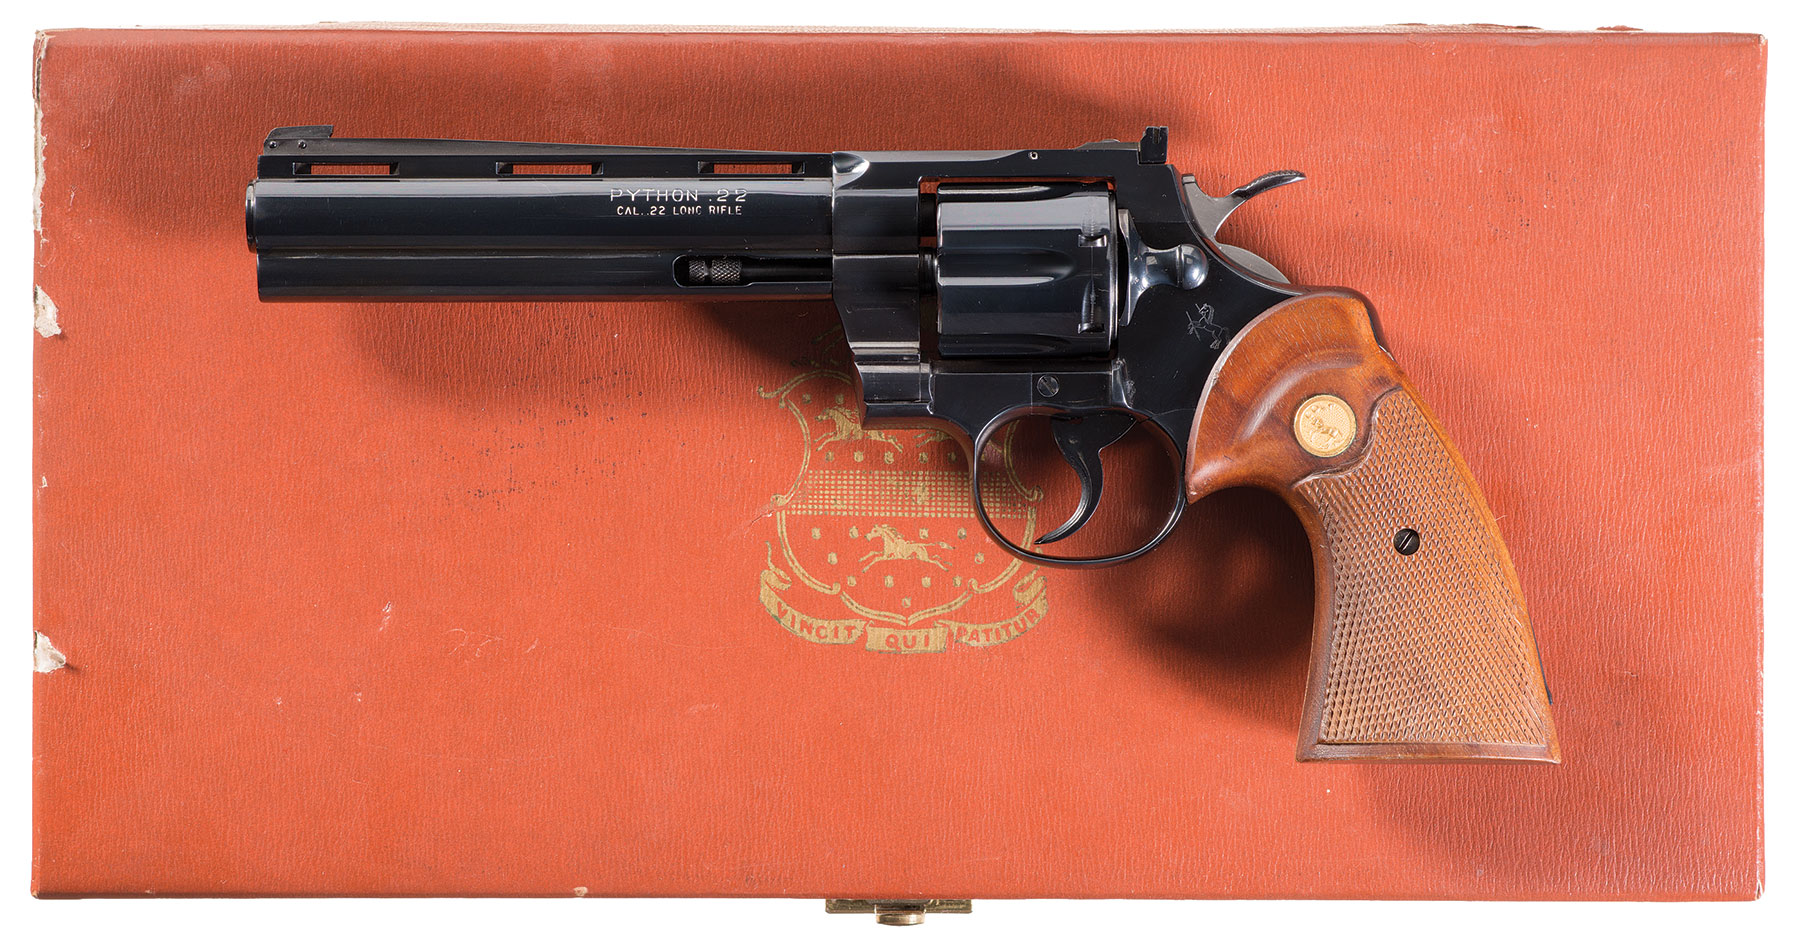 Extremely Rare Colt Python Double Action revolver in  22 LR